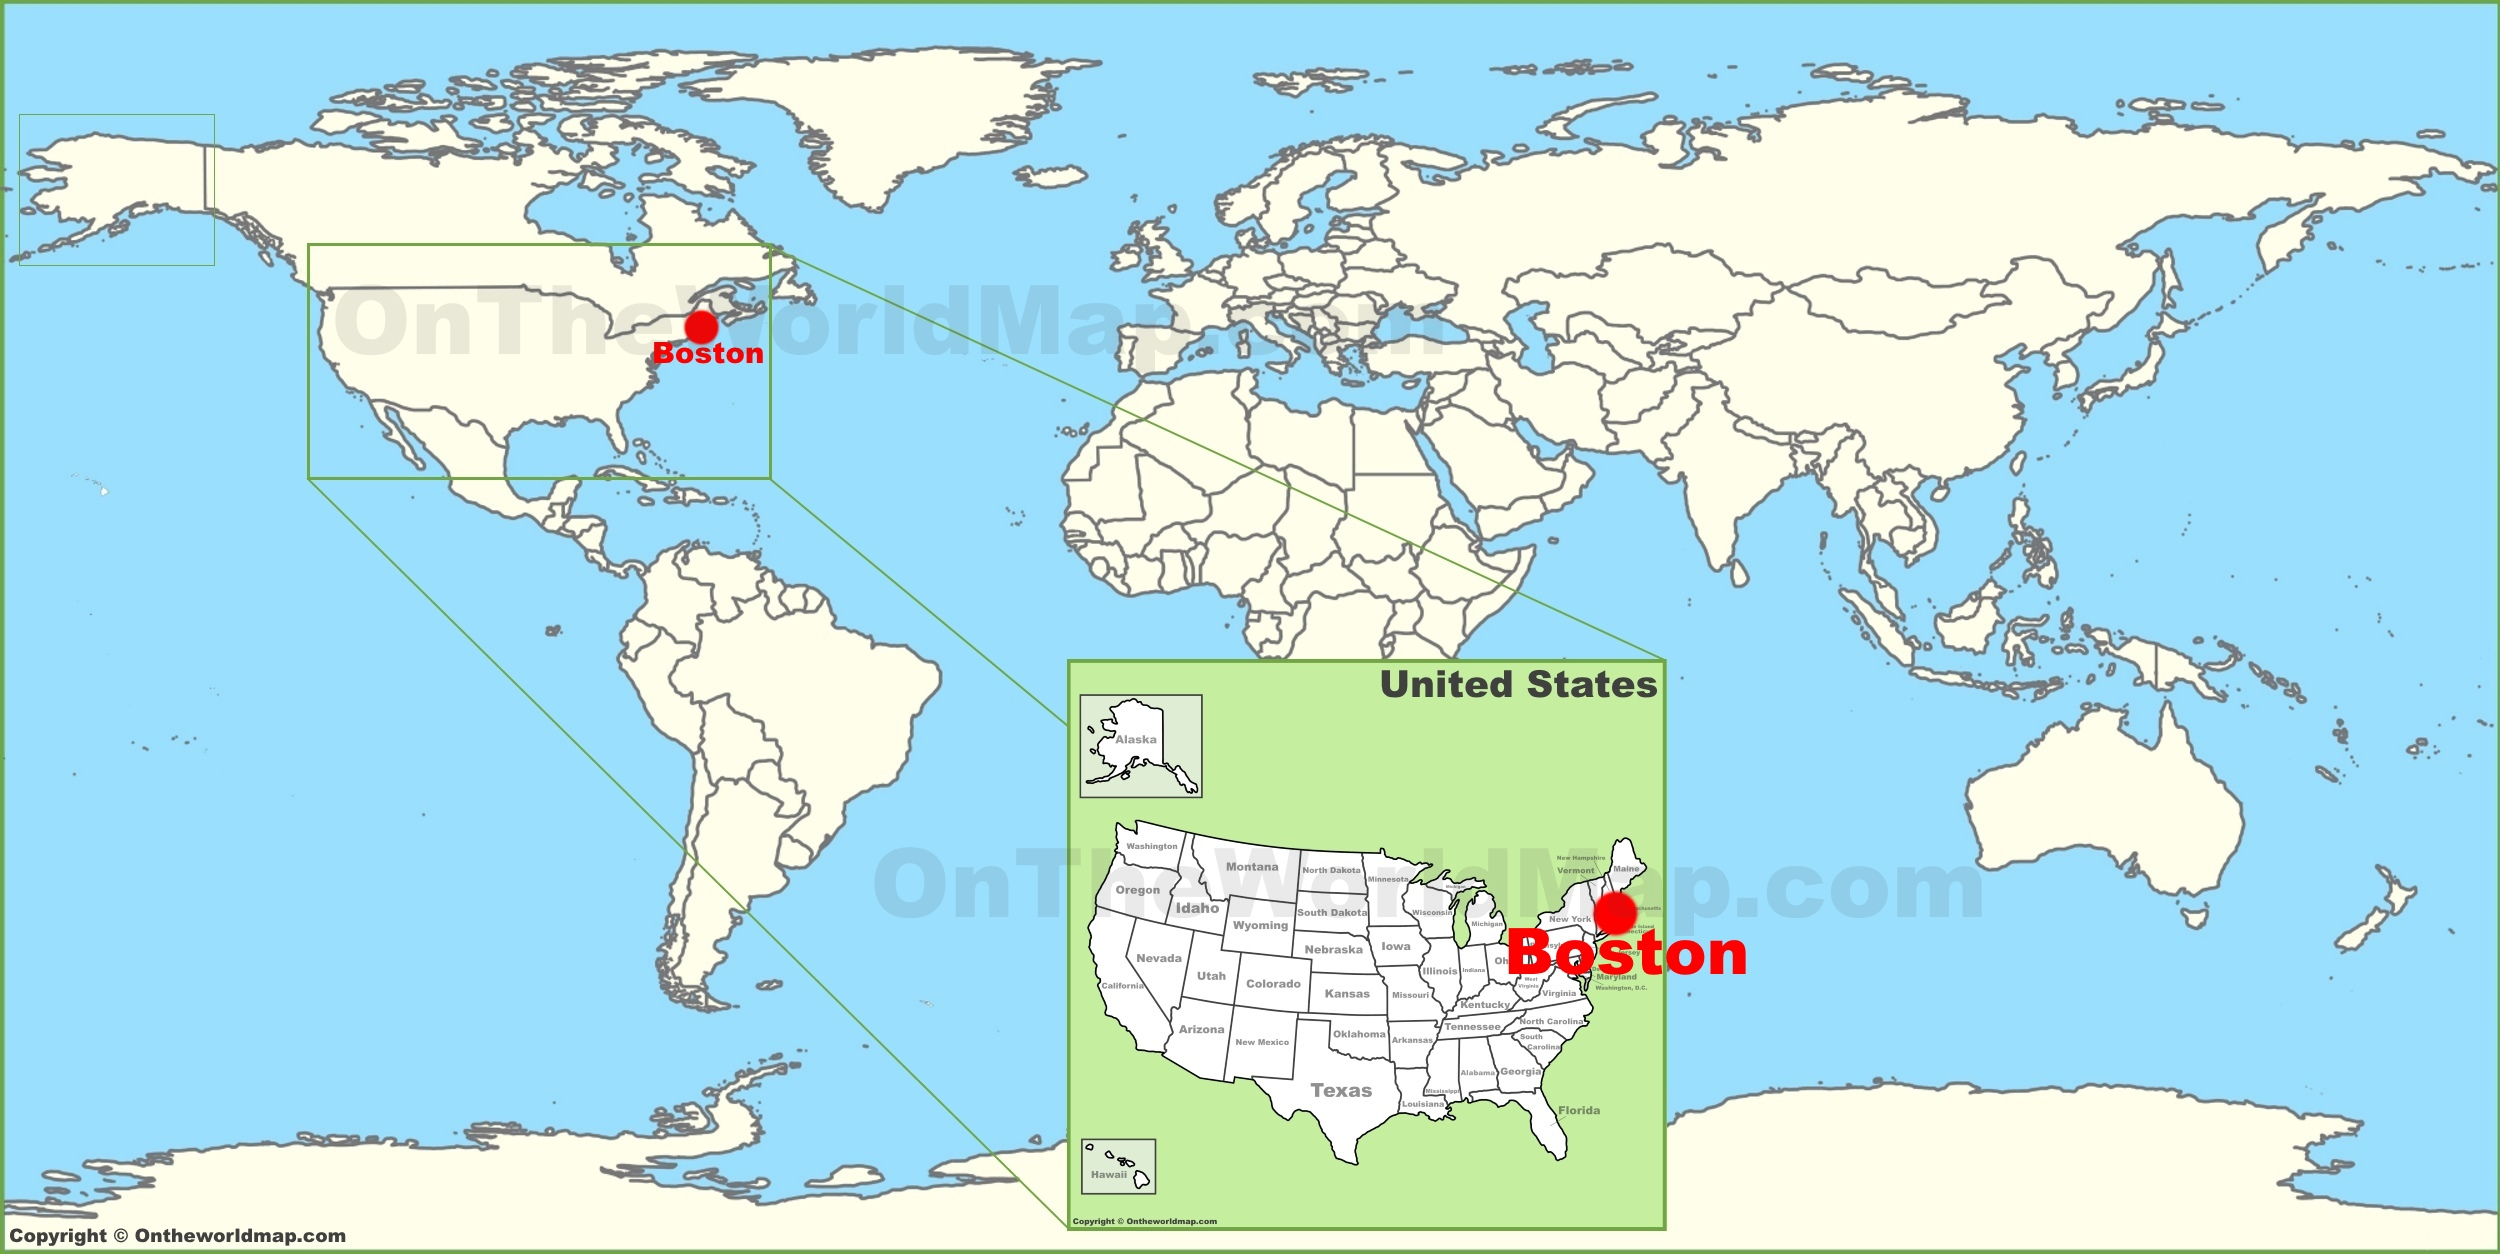 Boston On The World Map - Boston in usa map